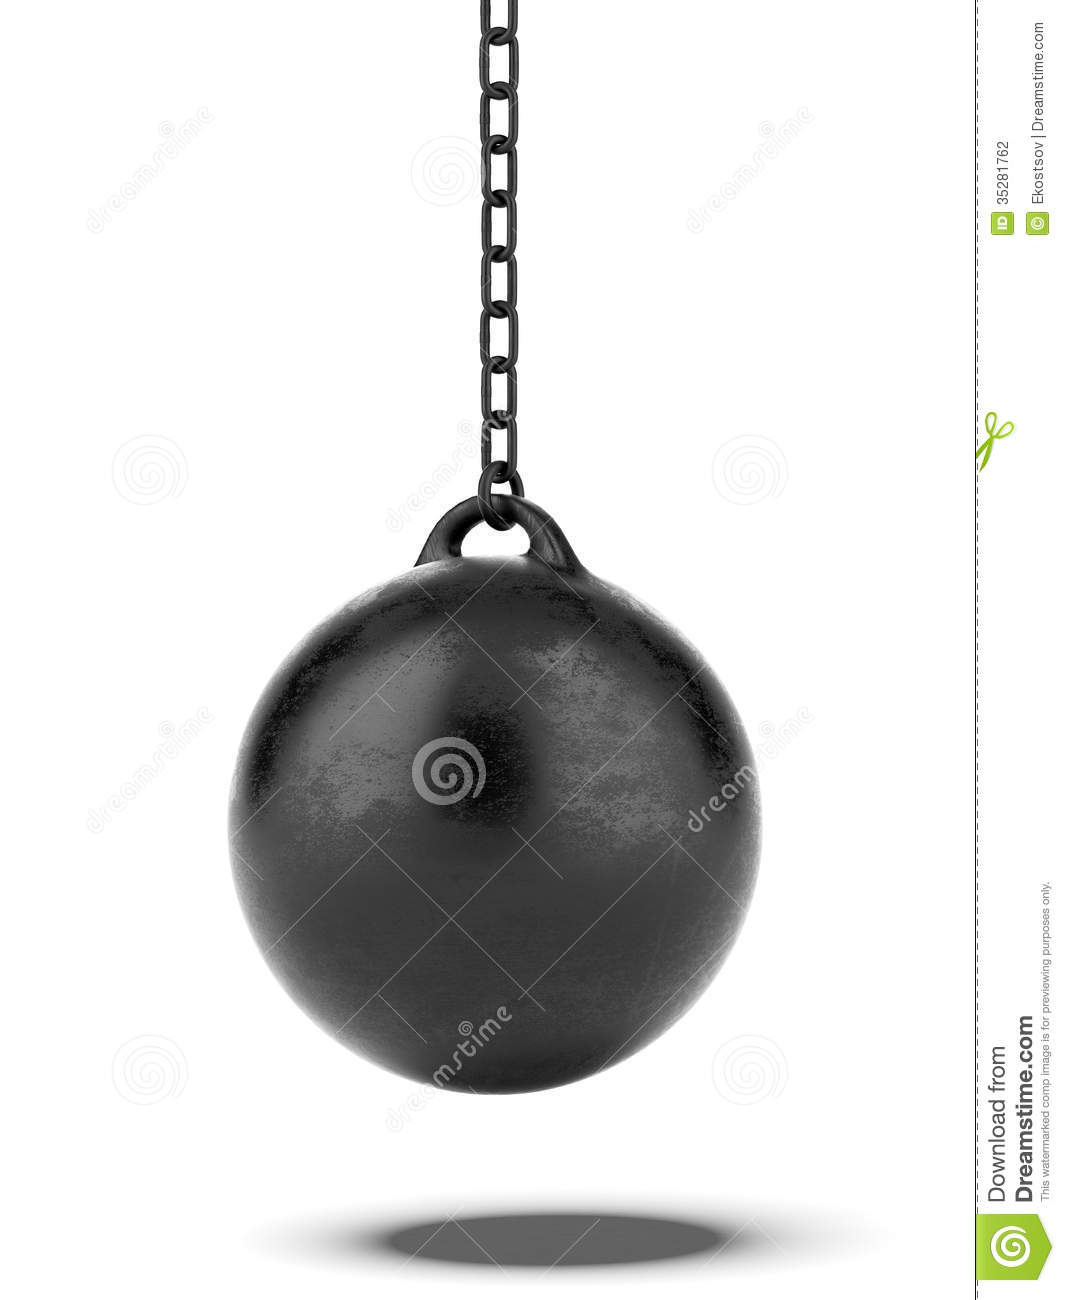 Black Wrecking ball isolated on a white background. 3d render.